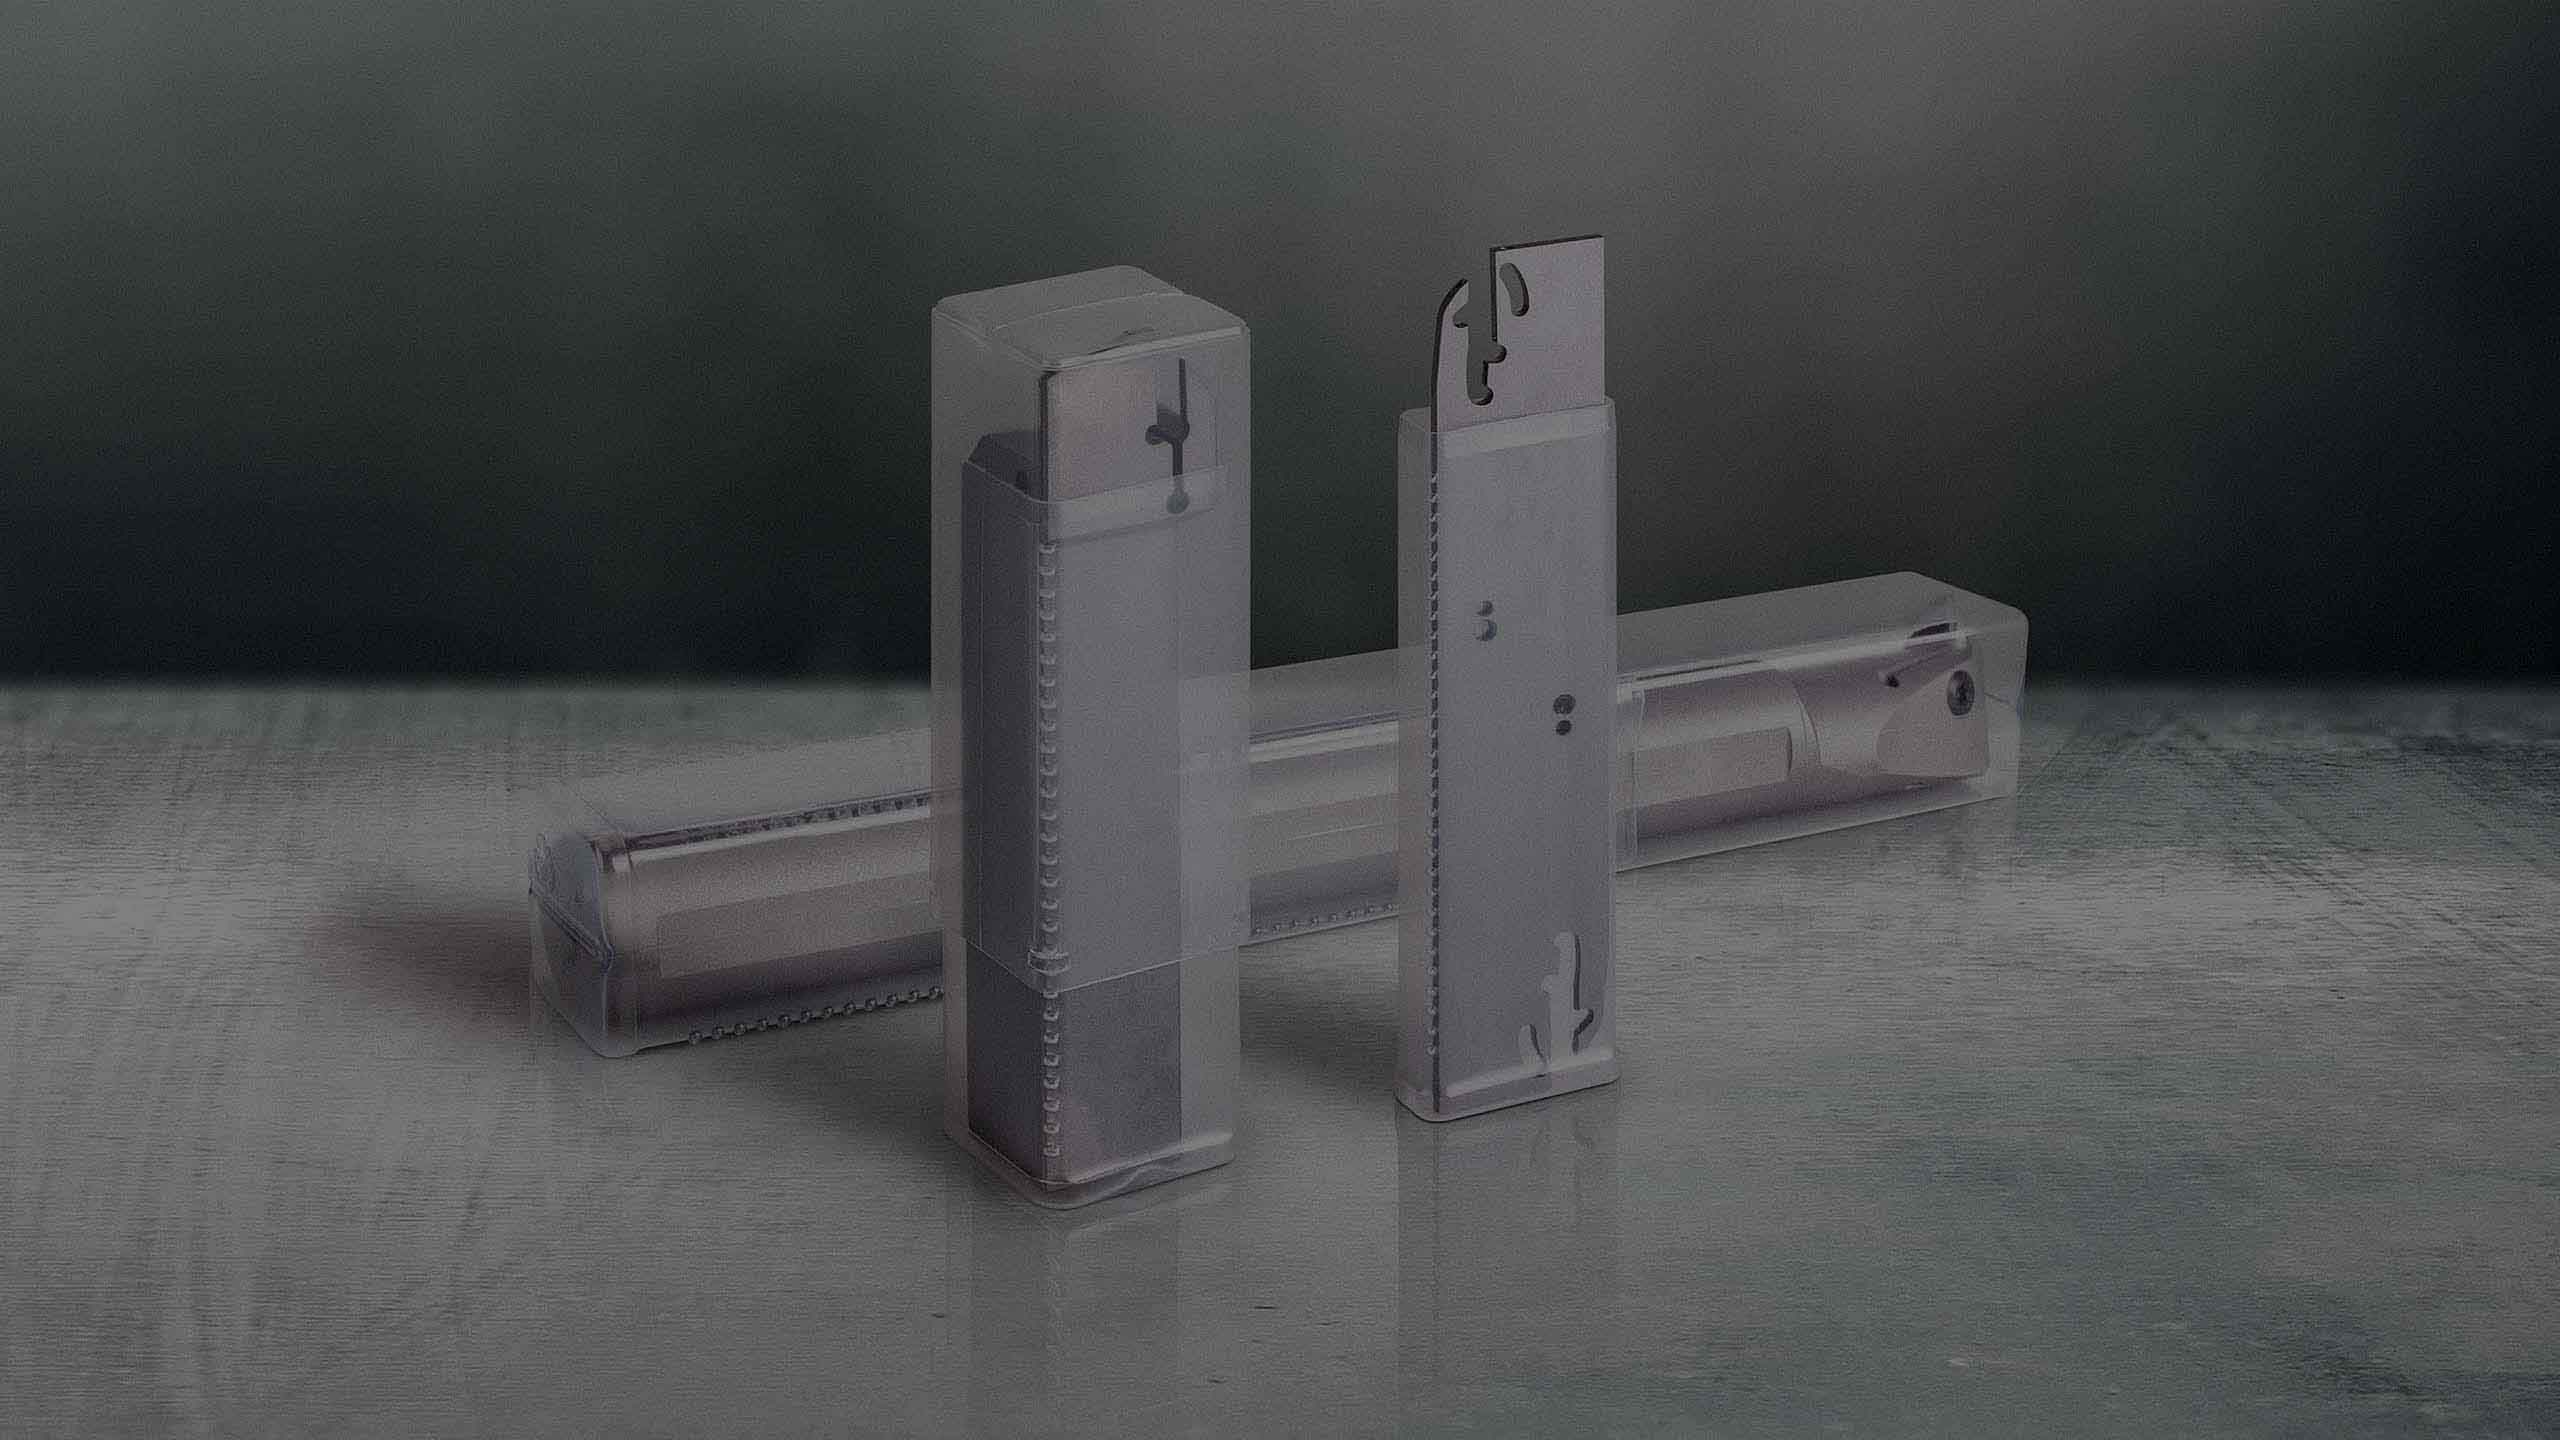 Plastic packaging solutions for parting and grooving tools.